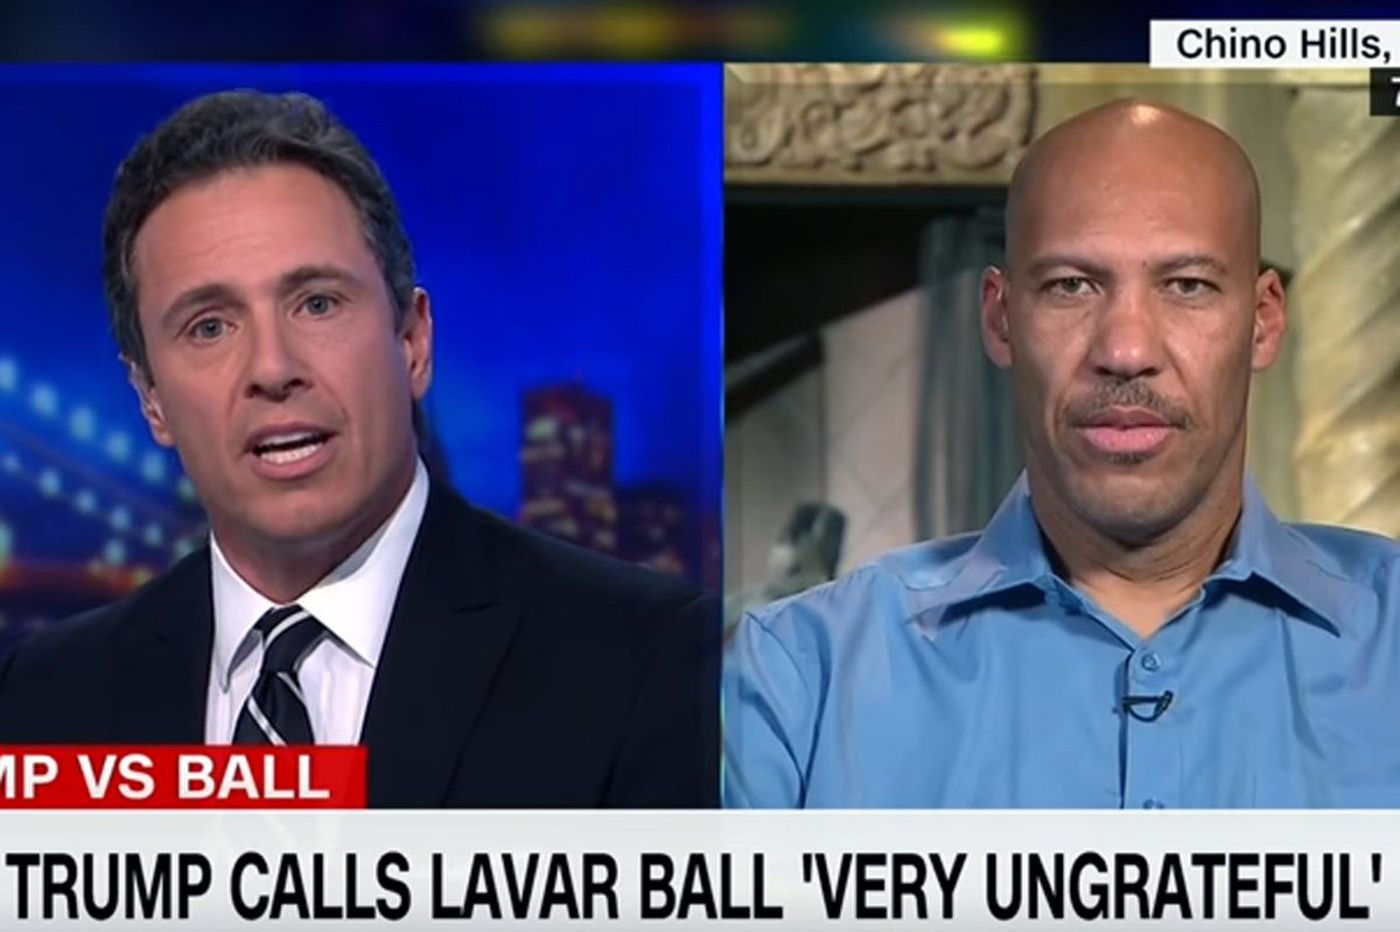 'Poor man's version of Don King': Trump continues his war of words with LaVar Ball